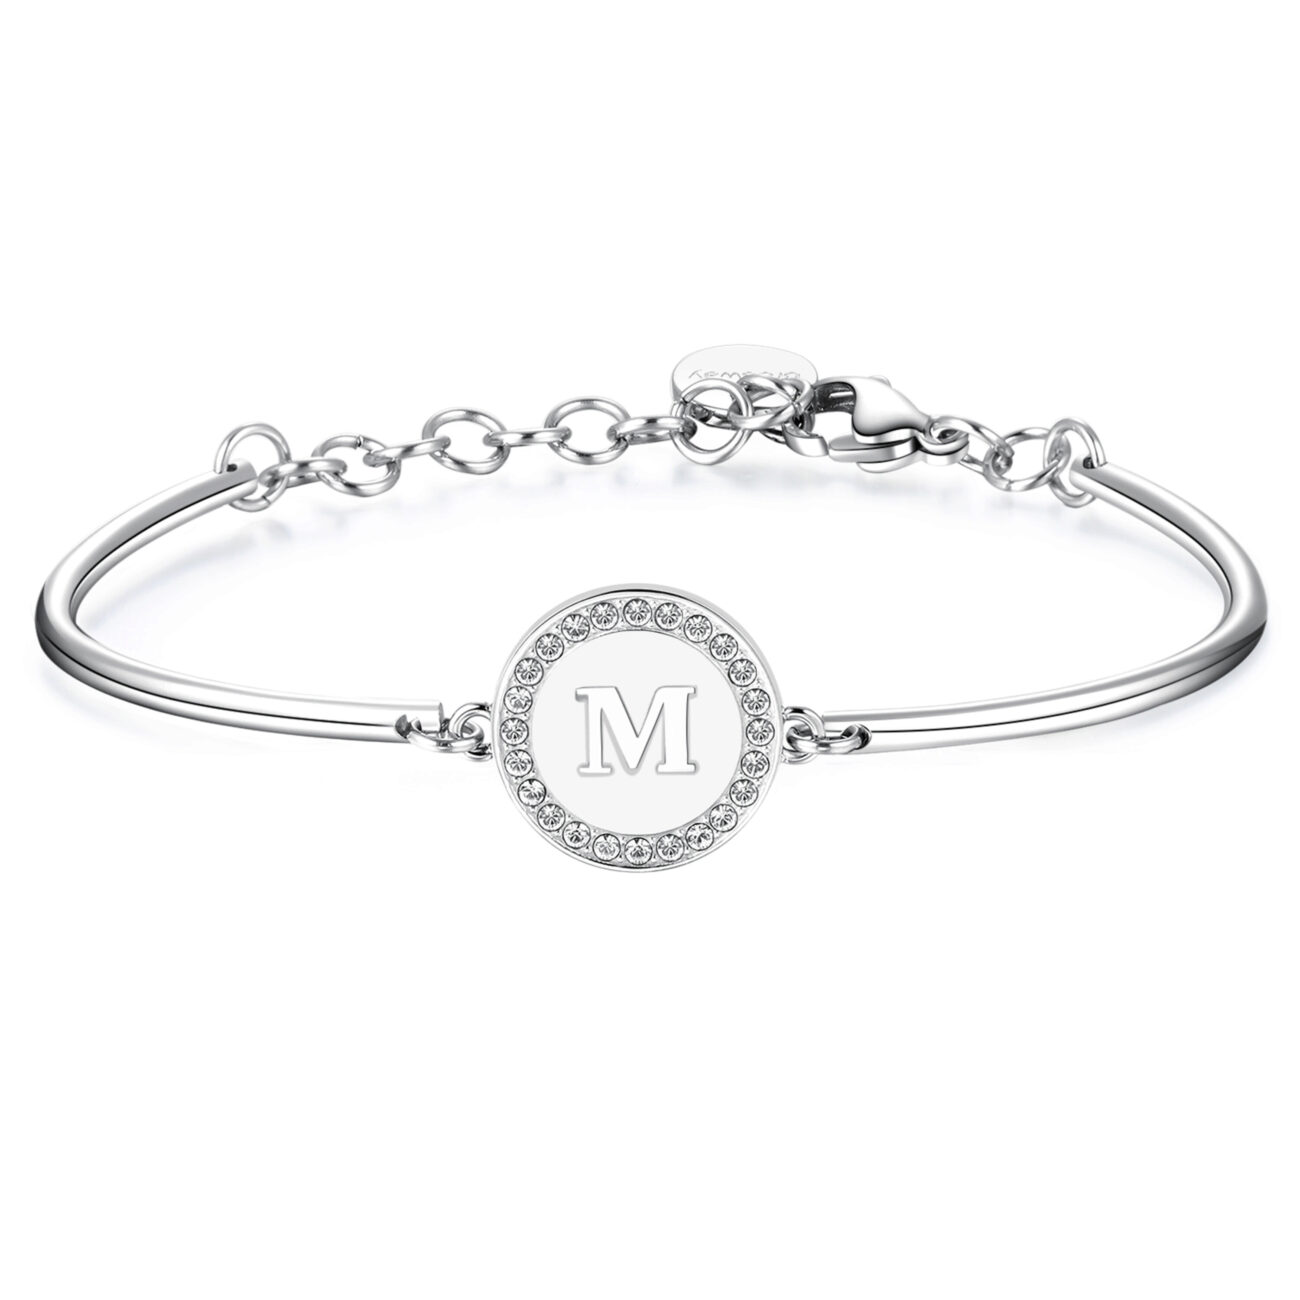 LETTER M: OPTIMISM, LOVE, ADAPTABILITYThose whose name starts with the letter 'M' are optimistic and cheerful. Ms live their lives to the fullest, making of love their lifeblood. They are individuals who can adapt to new situations in life.316L Stainless steel bracelet and Swarovski® Elements crystal with engraved disc.